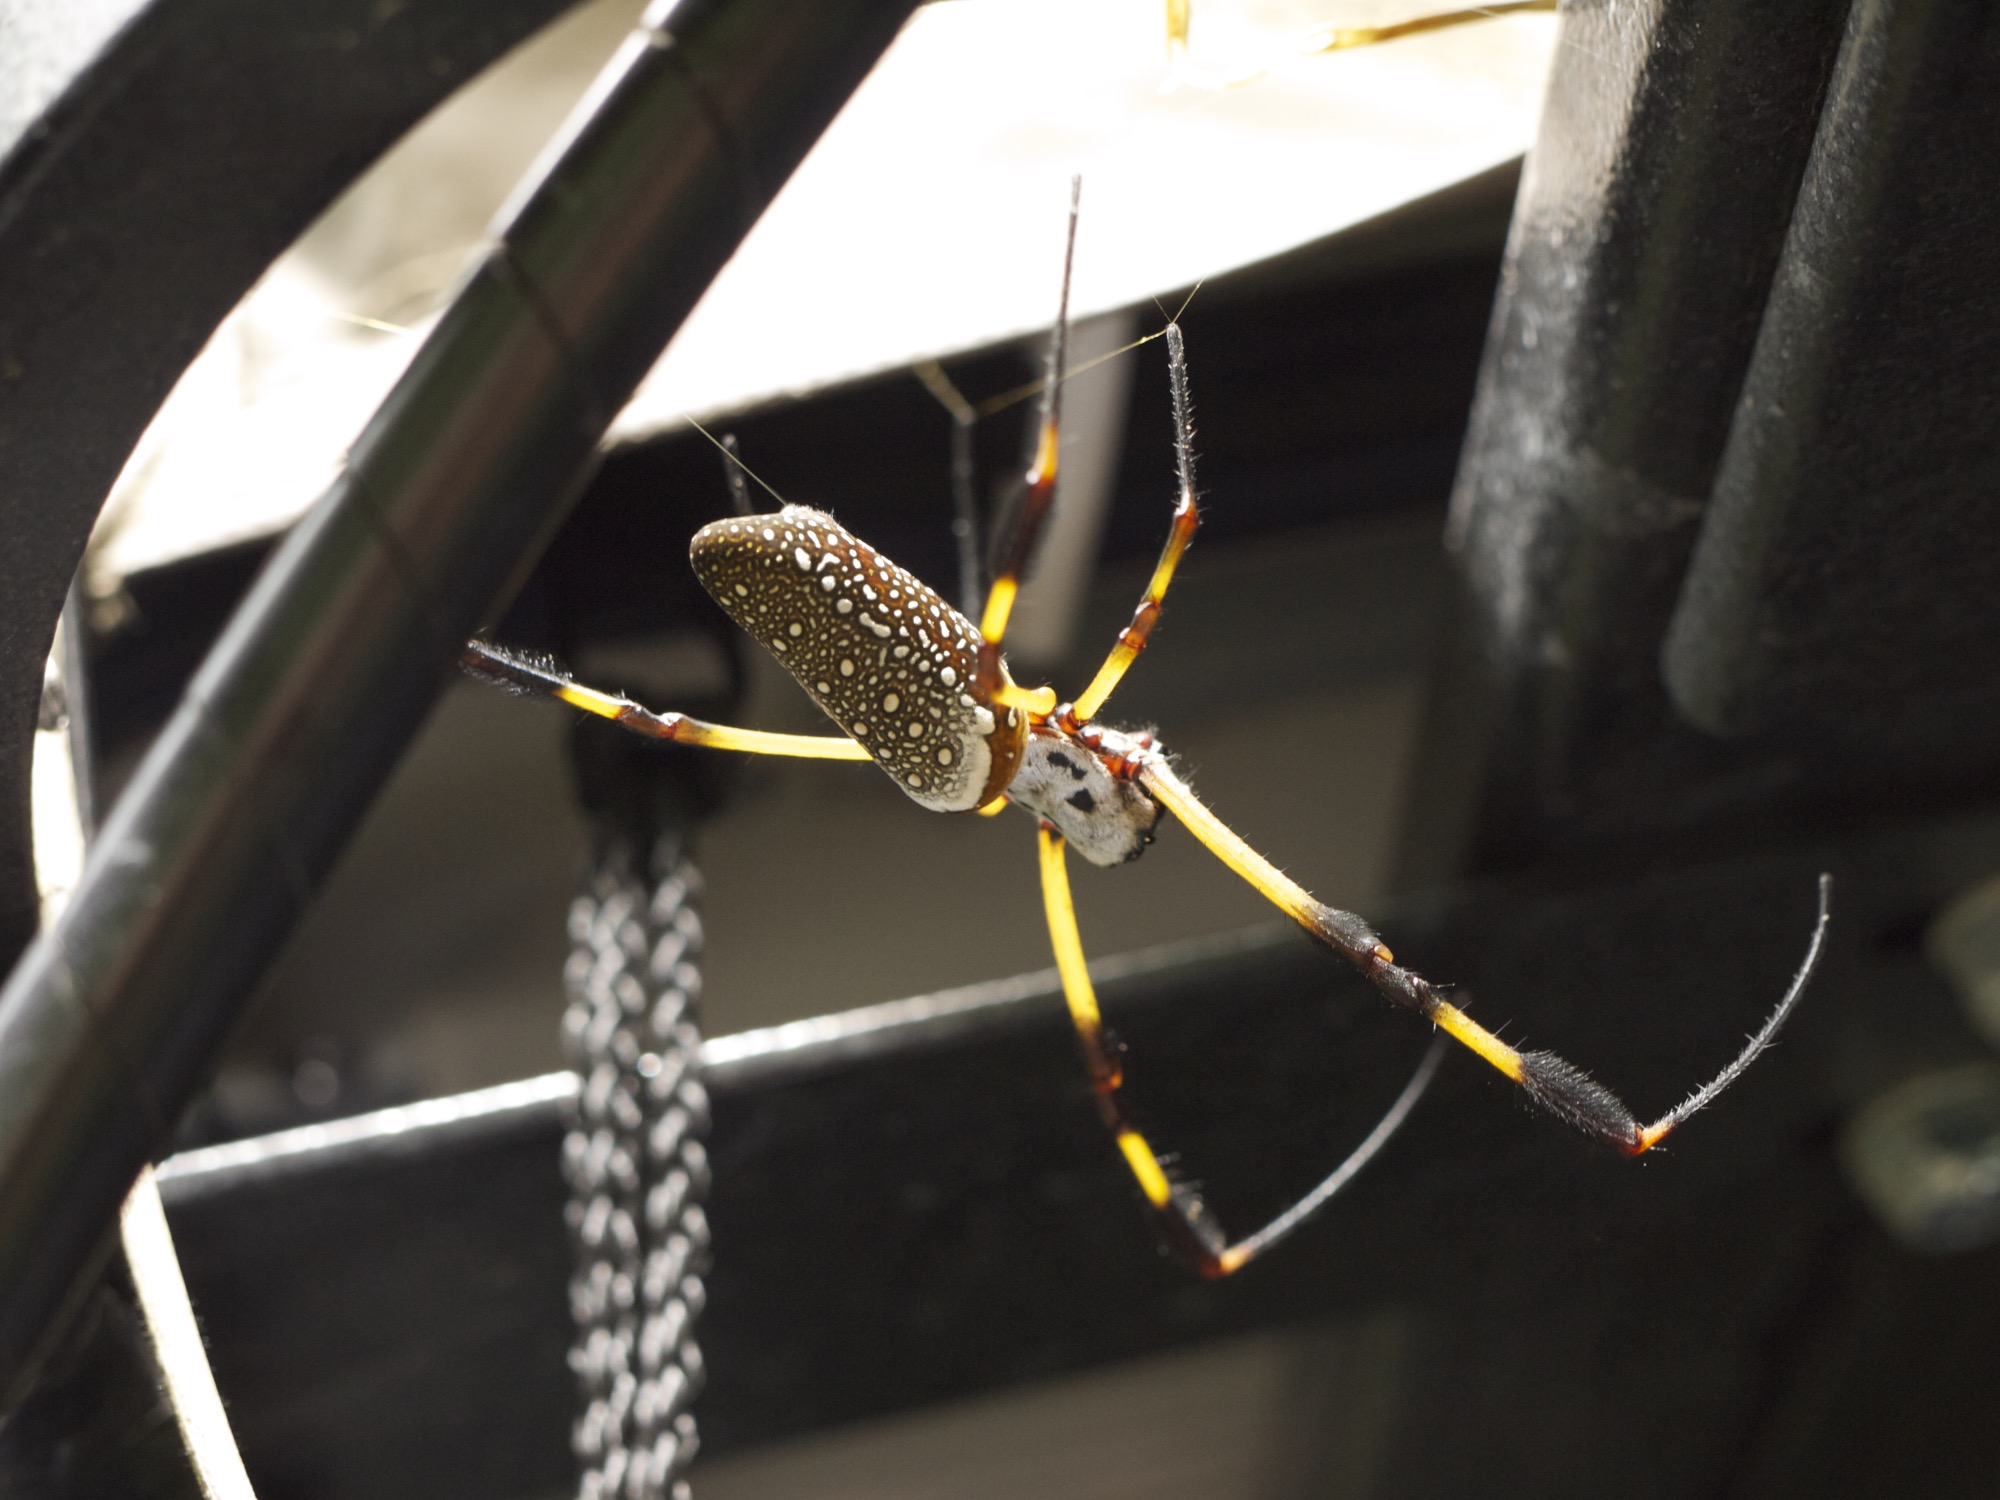 Golden orb-weaver makes impressive company in the jungle